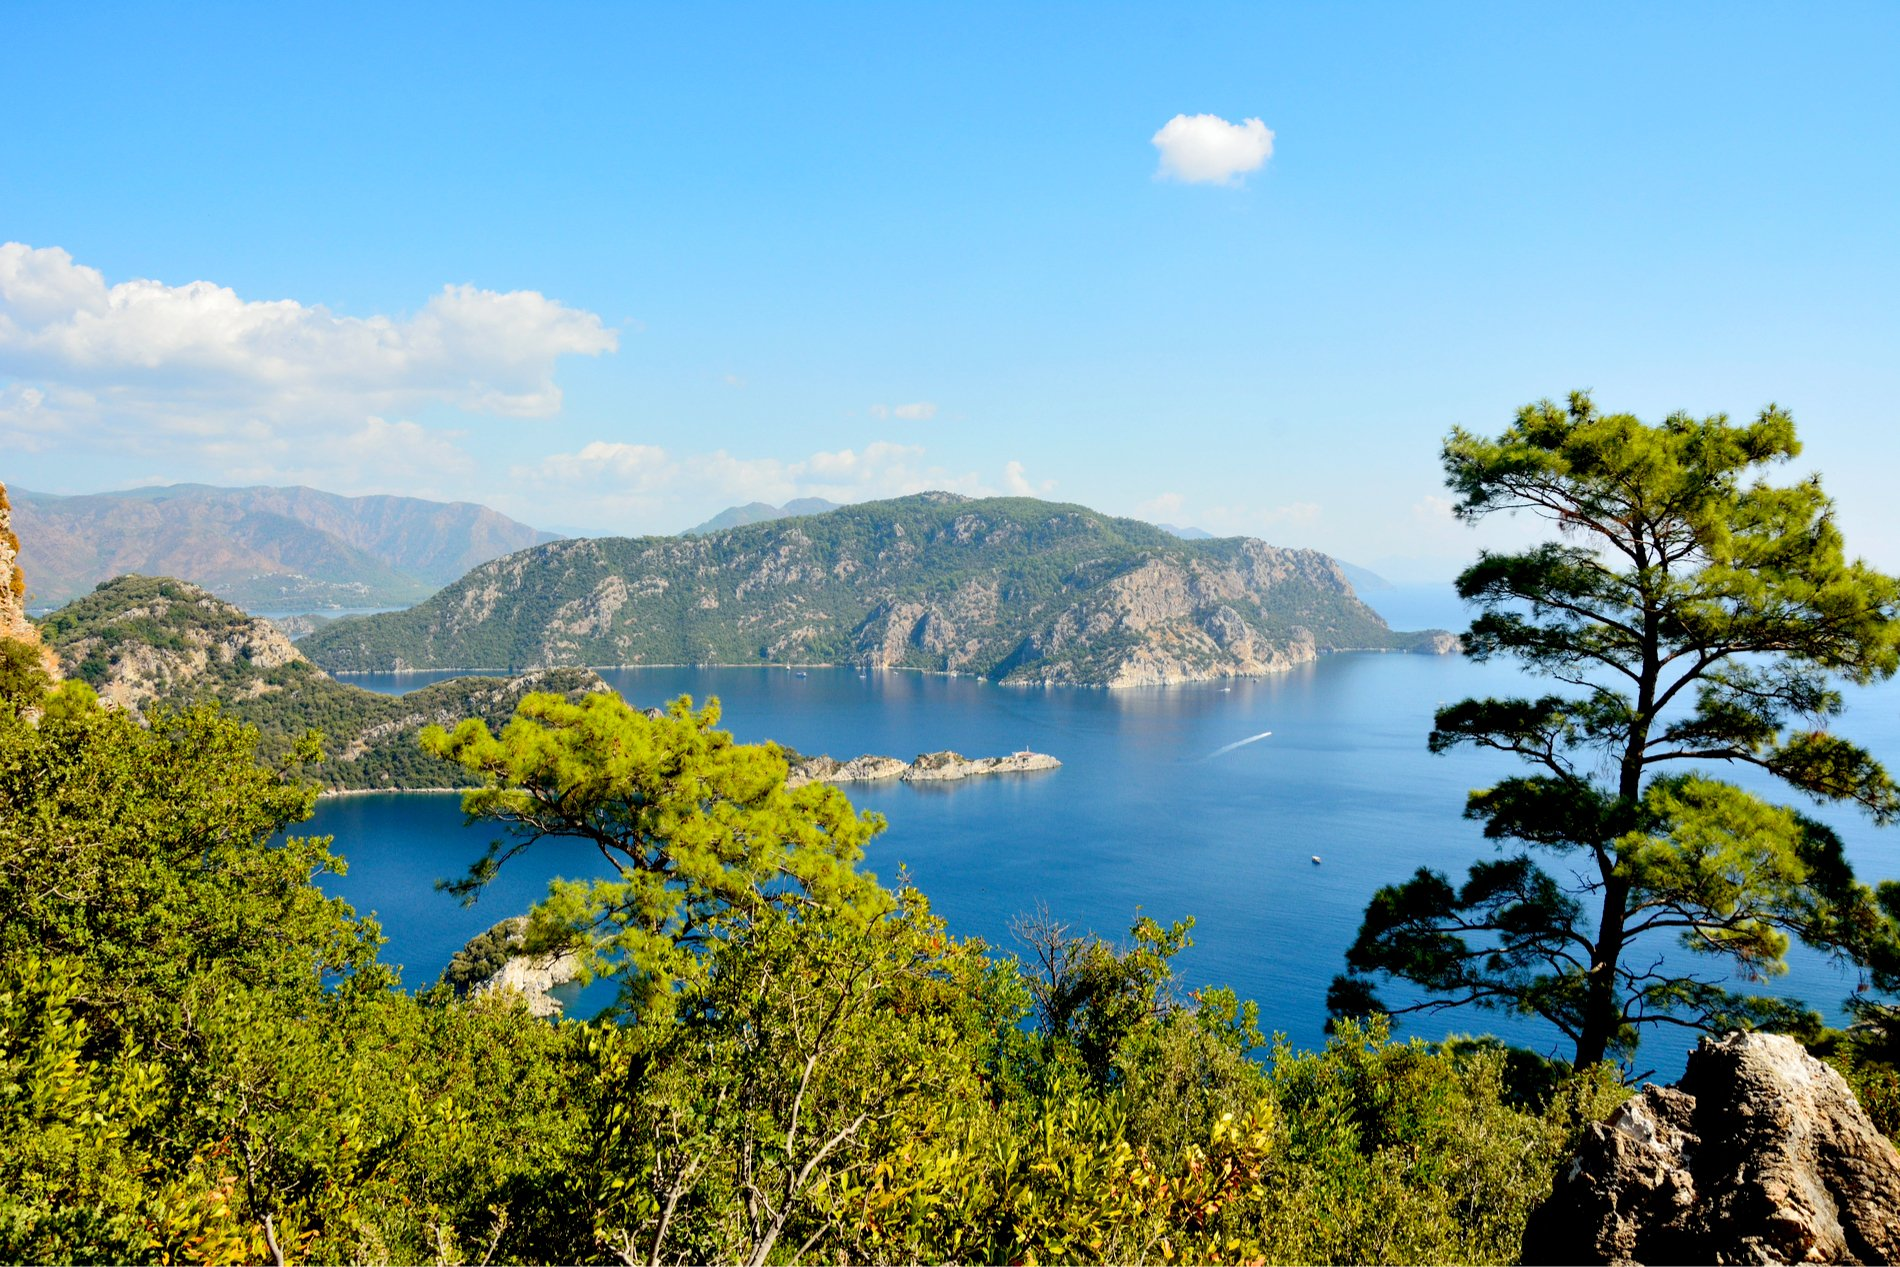 the carian way, the Carian Trail and Turkey's Aegean Coast, carian trail. carian trail walking holiday, carian trail self guided